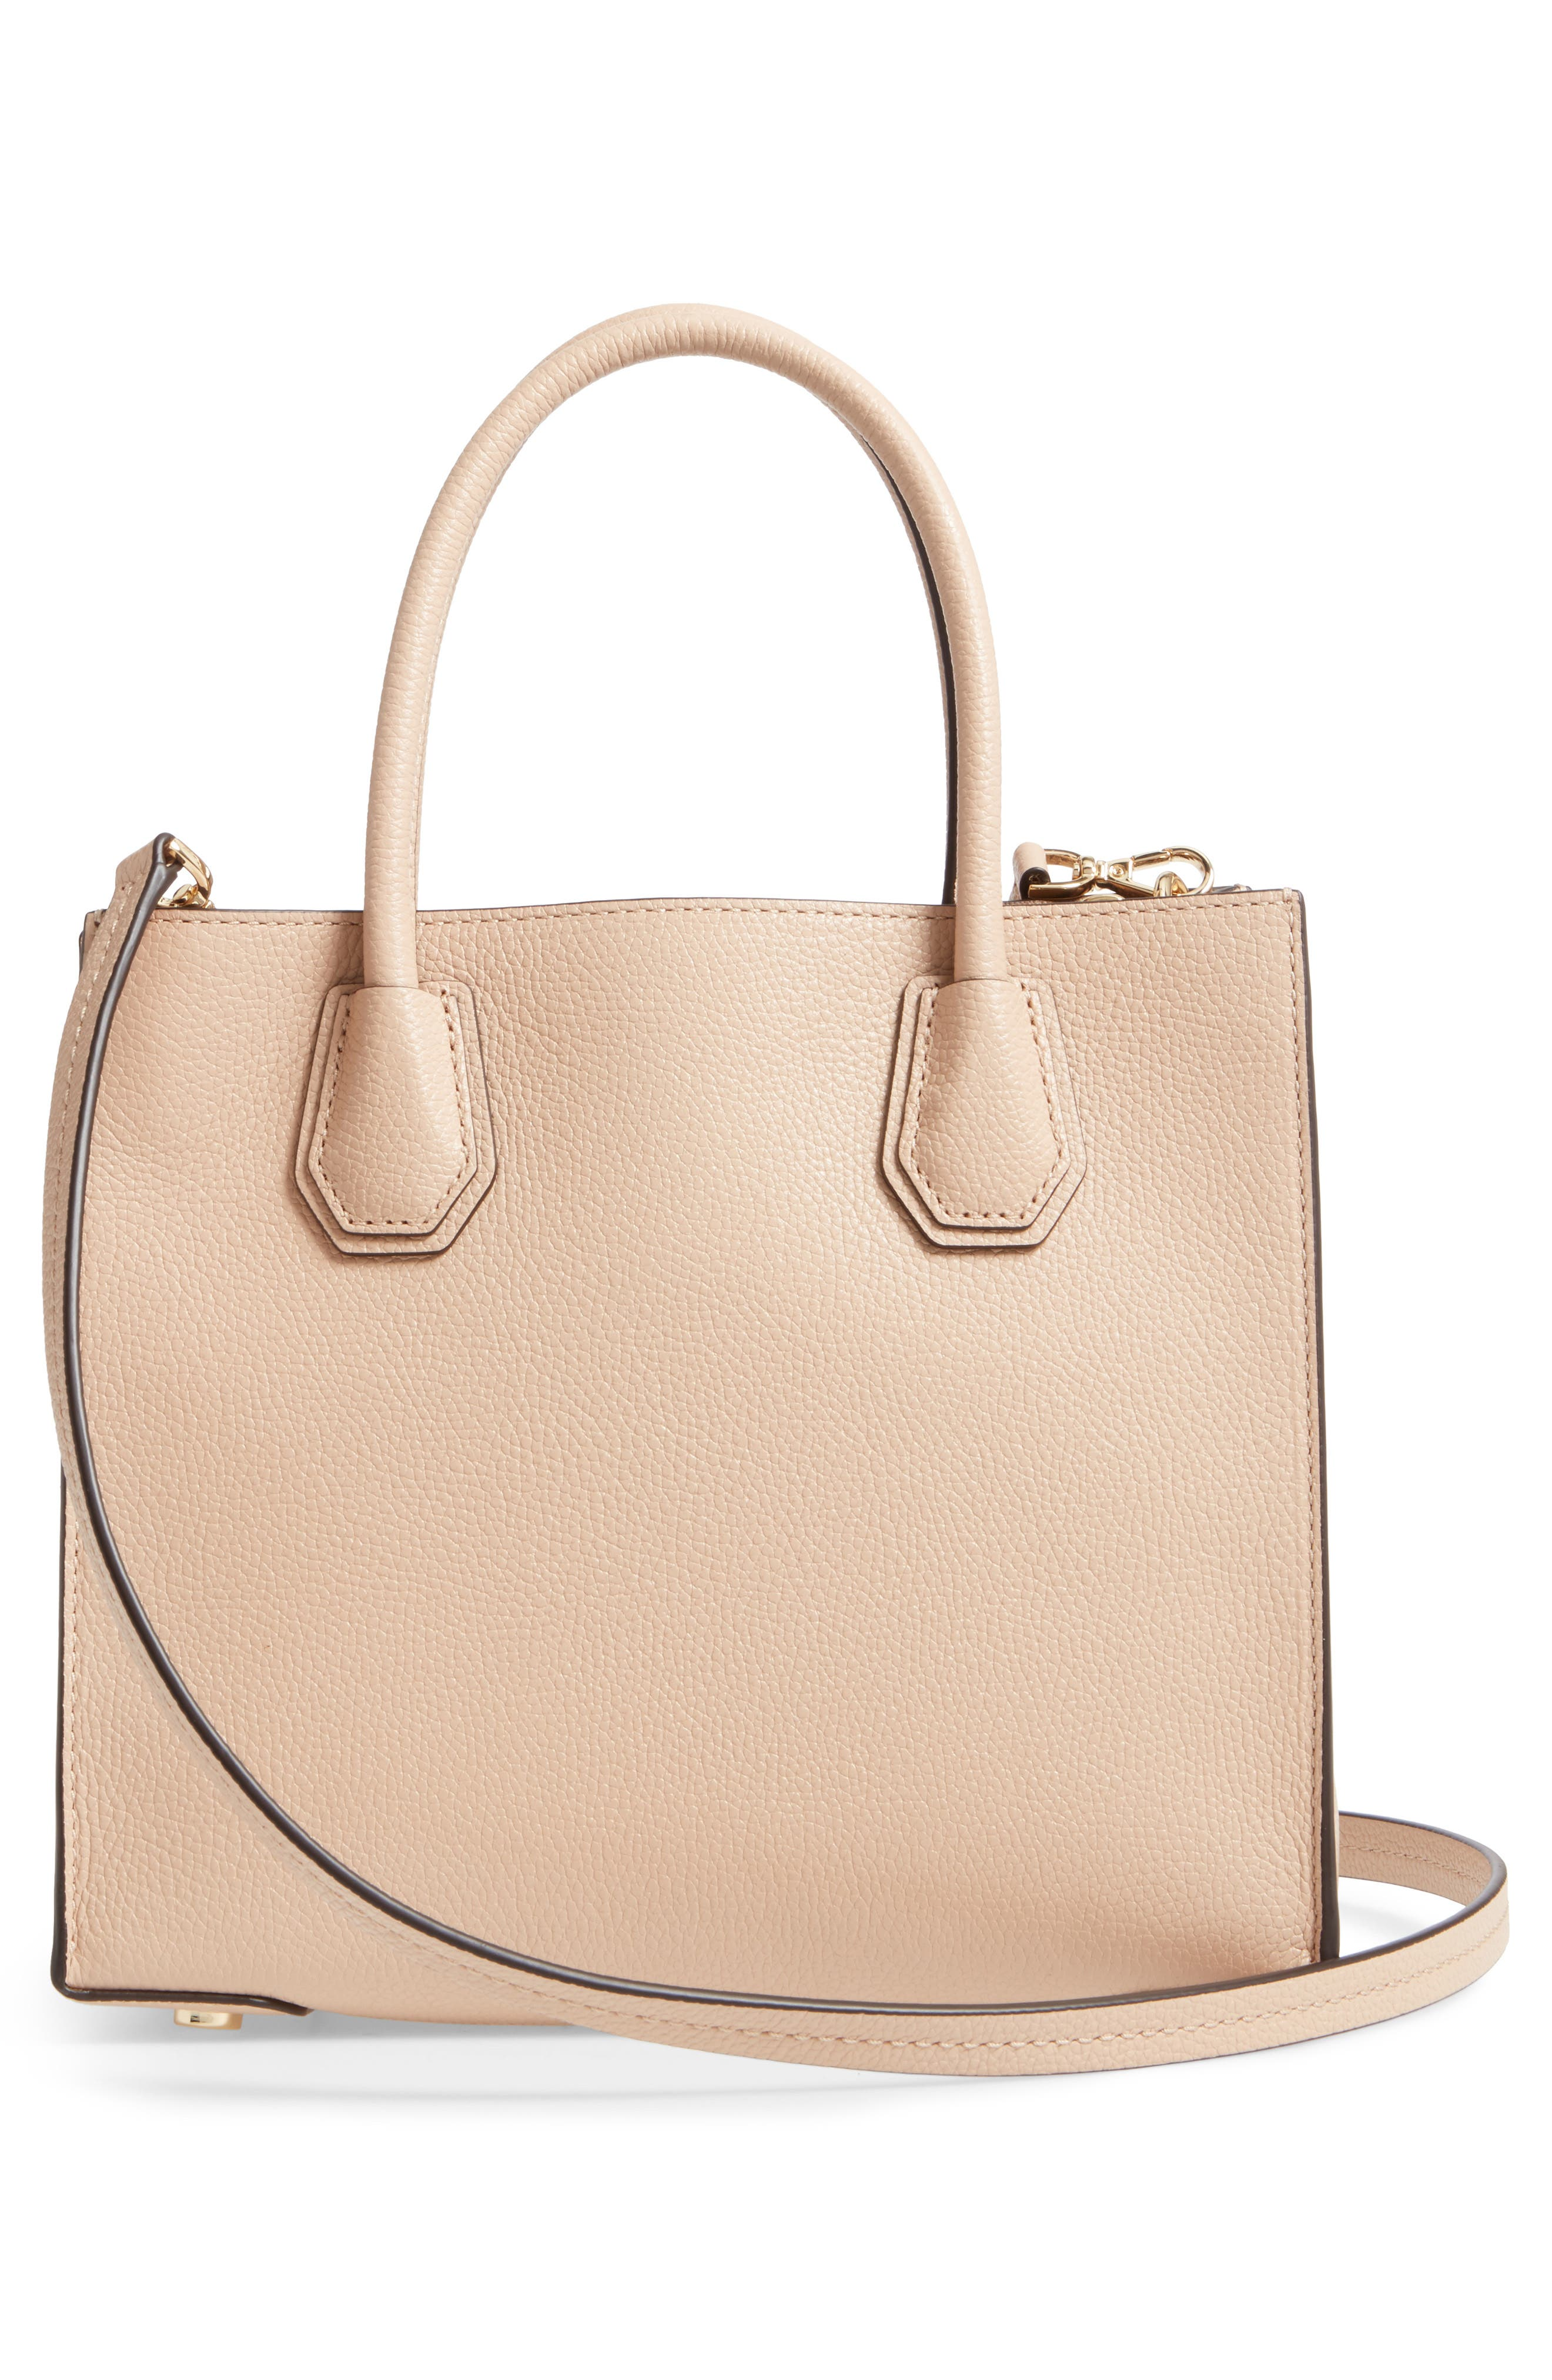 'Medium Mercer' Leather Tote,                             Alternate thumbnail 5, color,                             Oyster